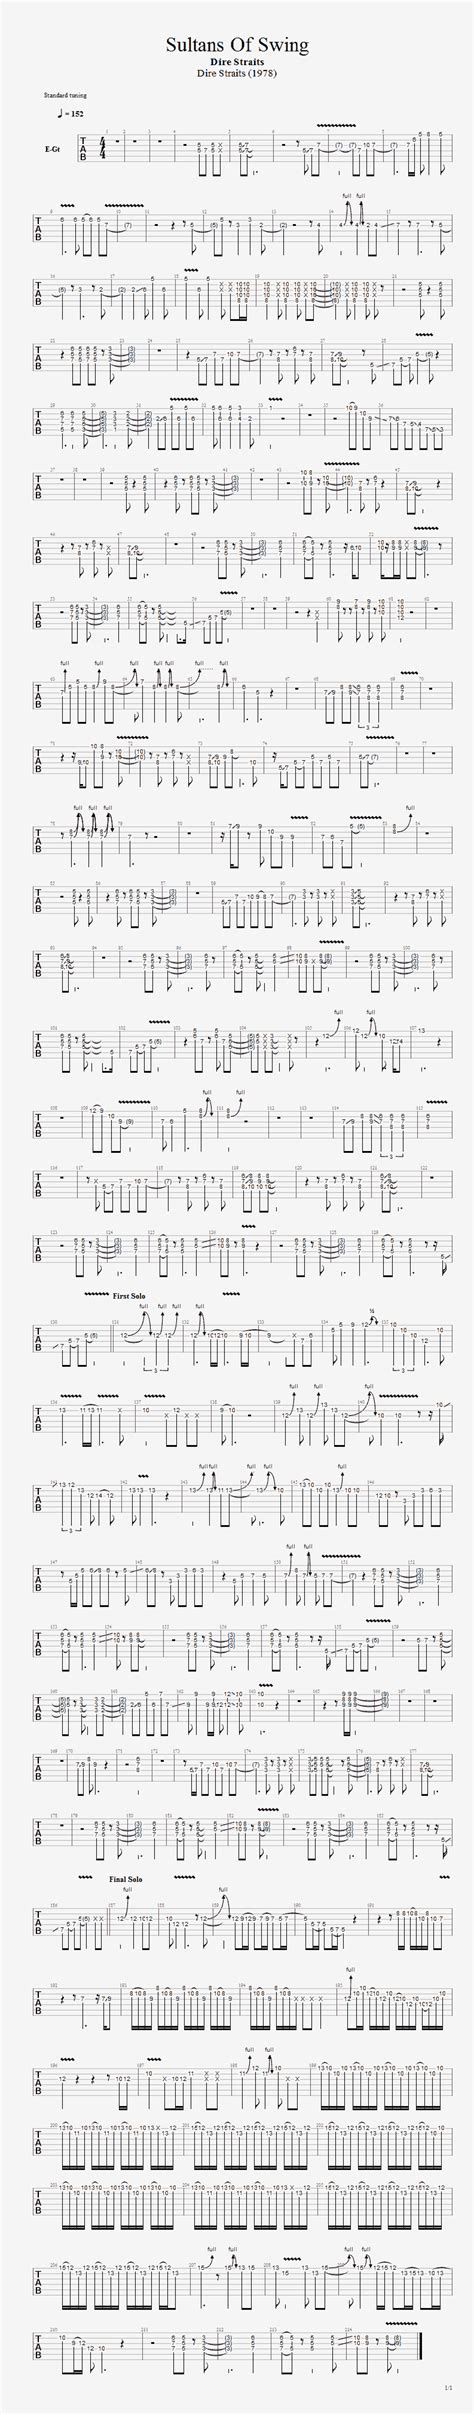 sultans of swing guitar tab sultans of swing guitar tab guitarnick com